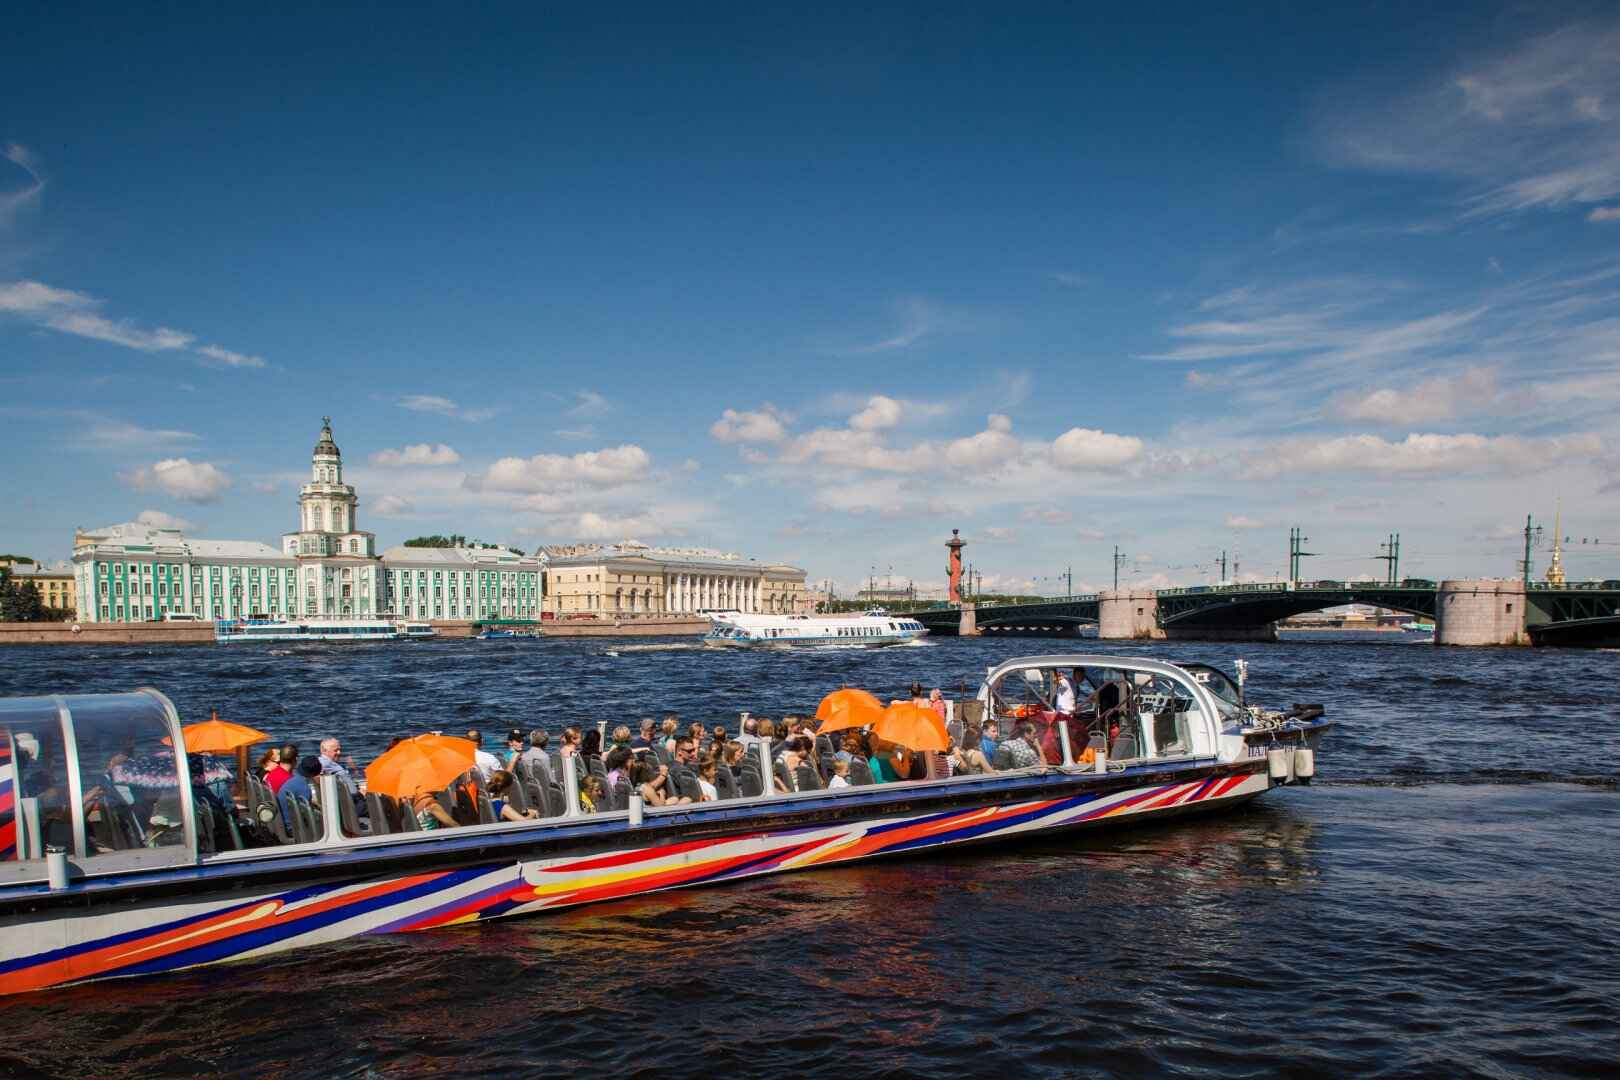 : City Sightseeing Neva. Paseos en barco en San Petersburgo, Фото 4